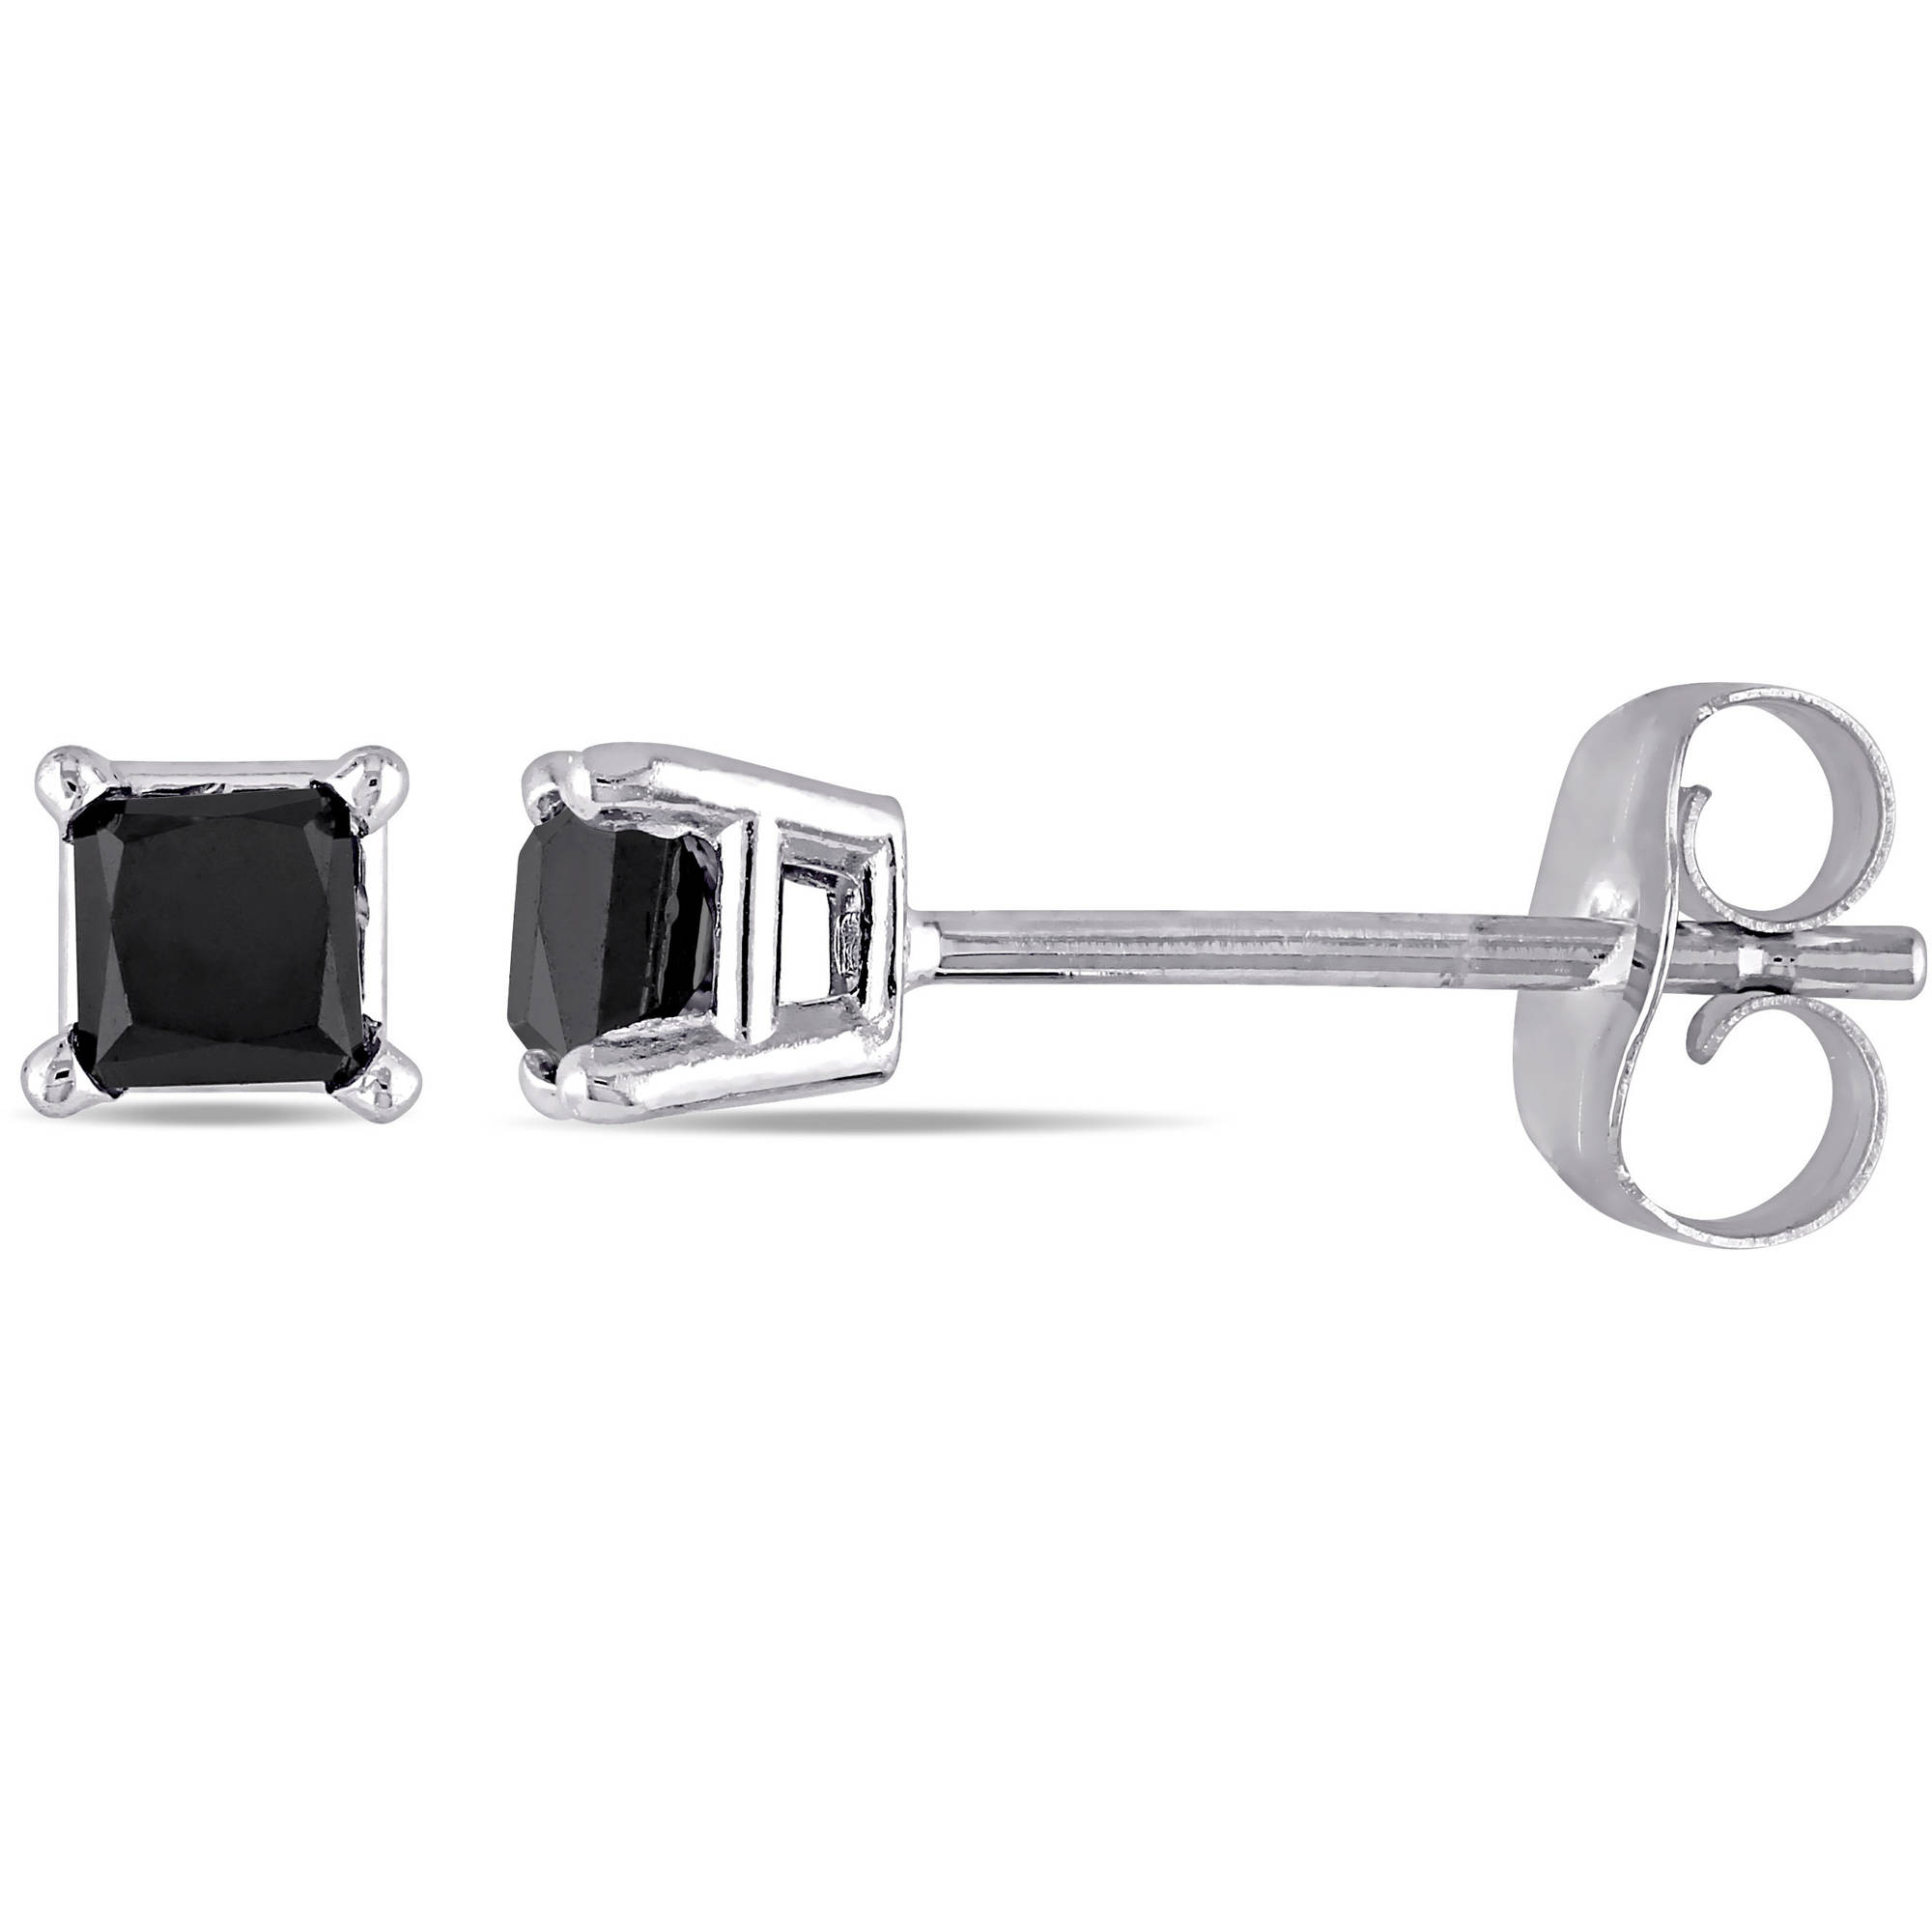 surgical square dp amazon steel mens basket jewelry crystal millimeters com body fashion earrings l for black men stud diamond set